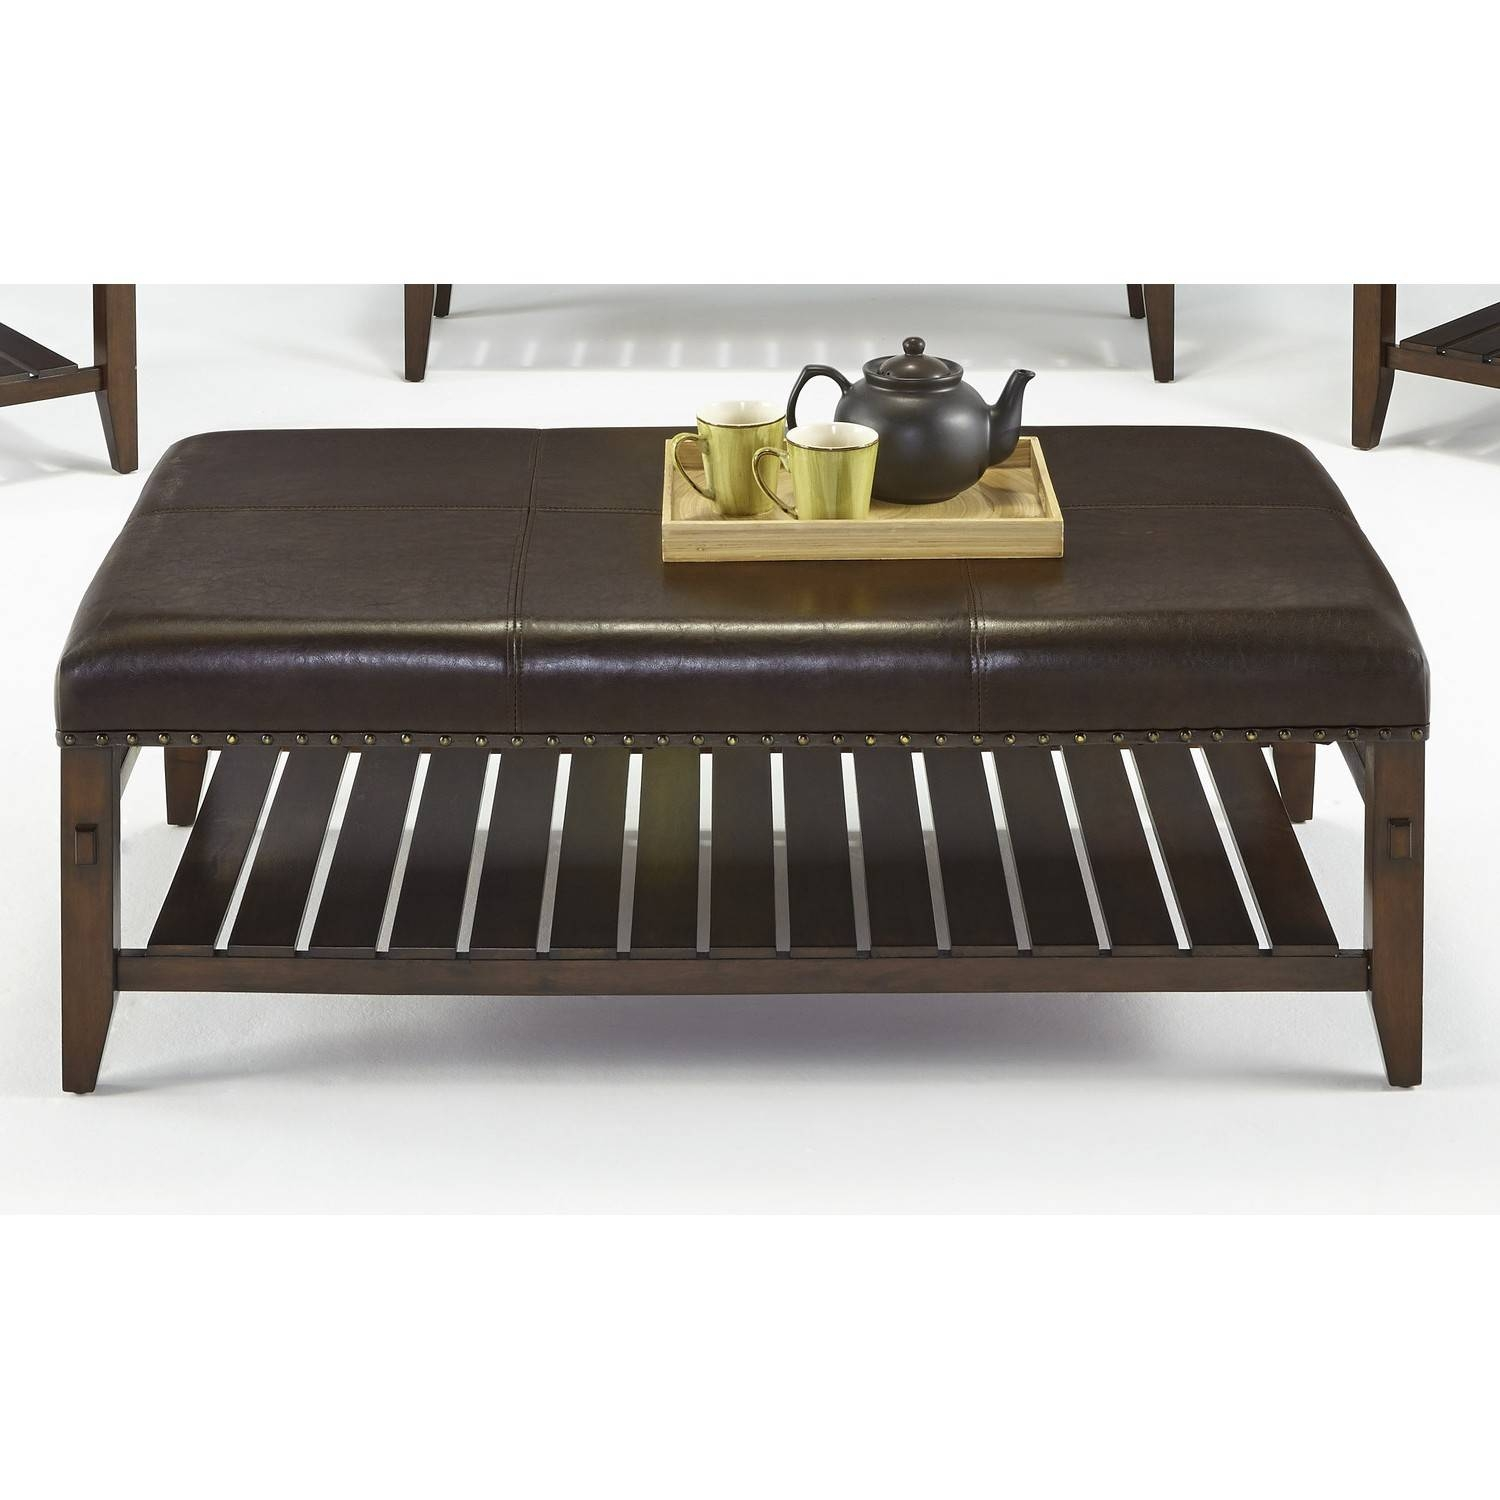 Exteriors ~ Stunning Rectangle Leather Ottoman Coffee Table within Coffee Tables With Shelves (Image 16 of 30)